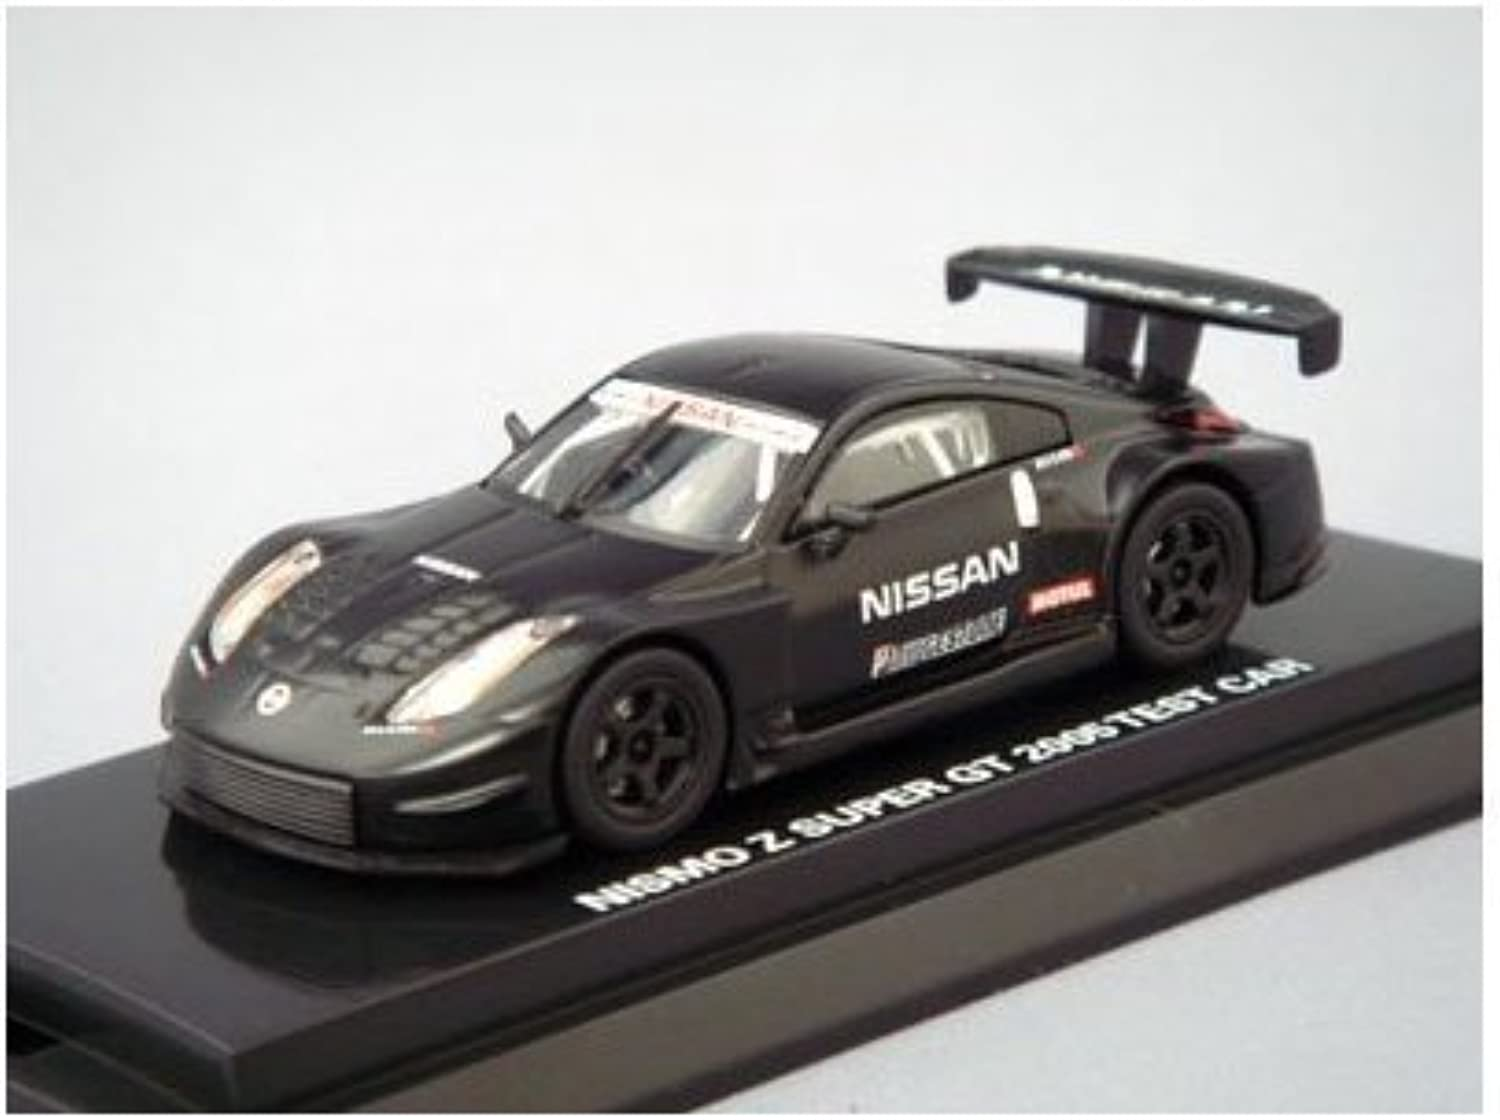 Kyosho beads collection 1 64 Nissan Nismo Z Super GT 2005 test car